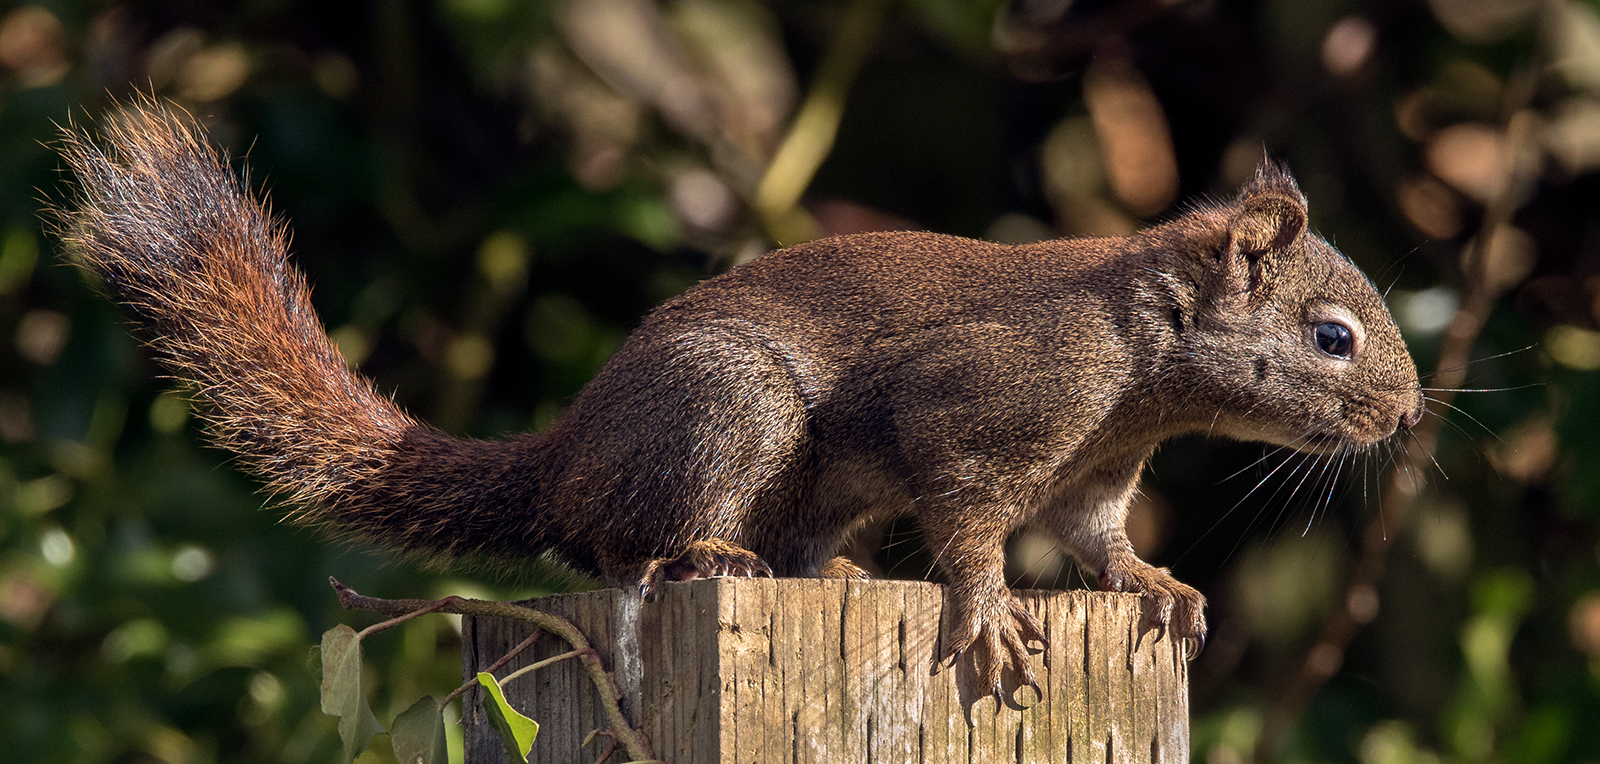 A native red squirrel in Parksville (no herring involved :))